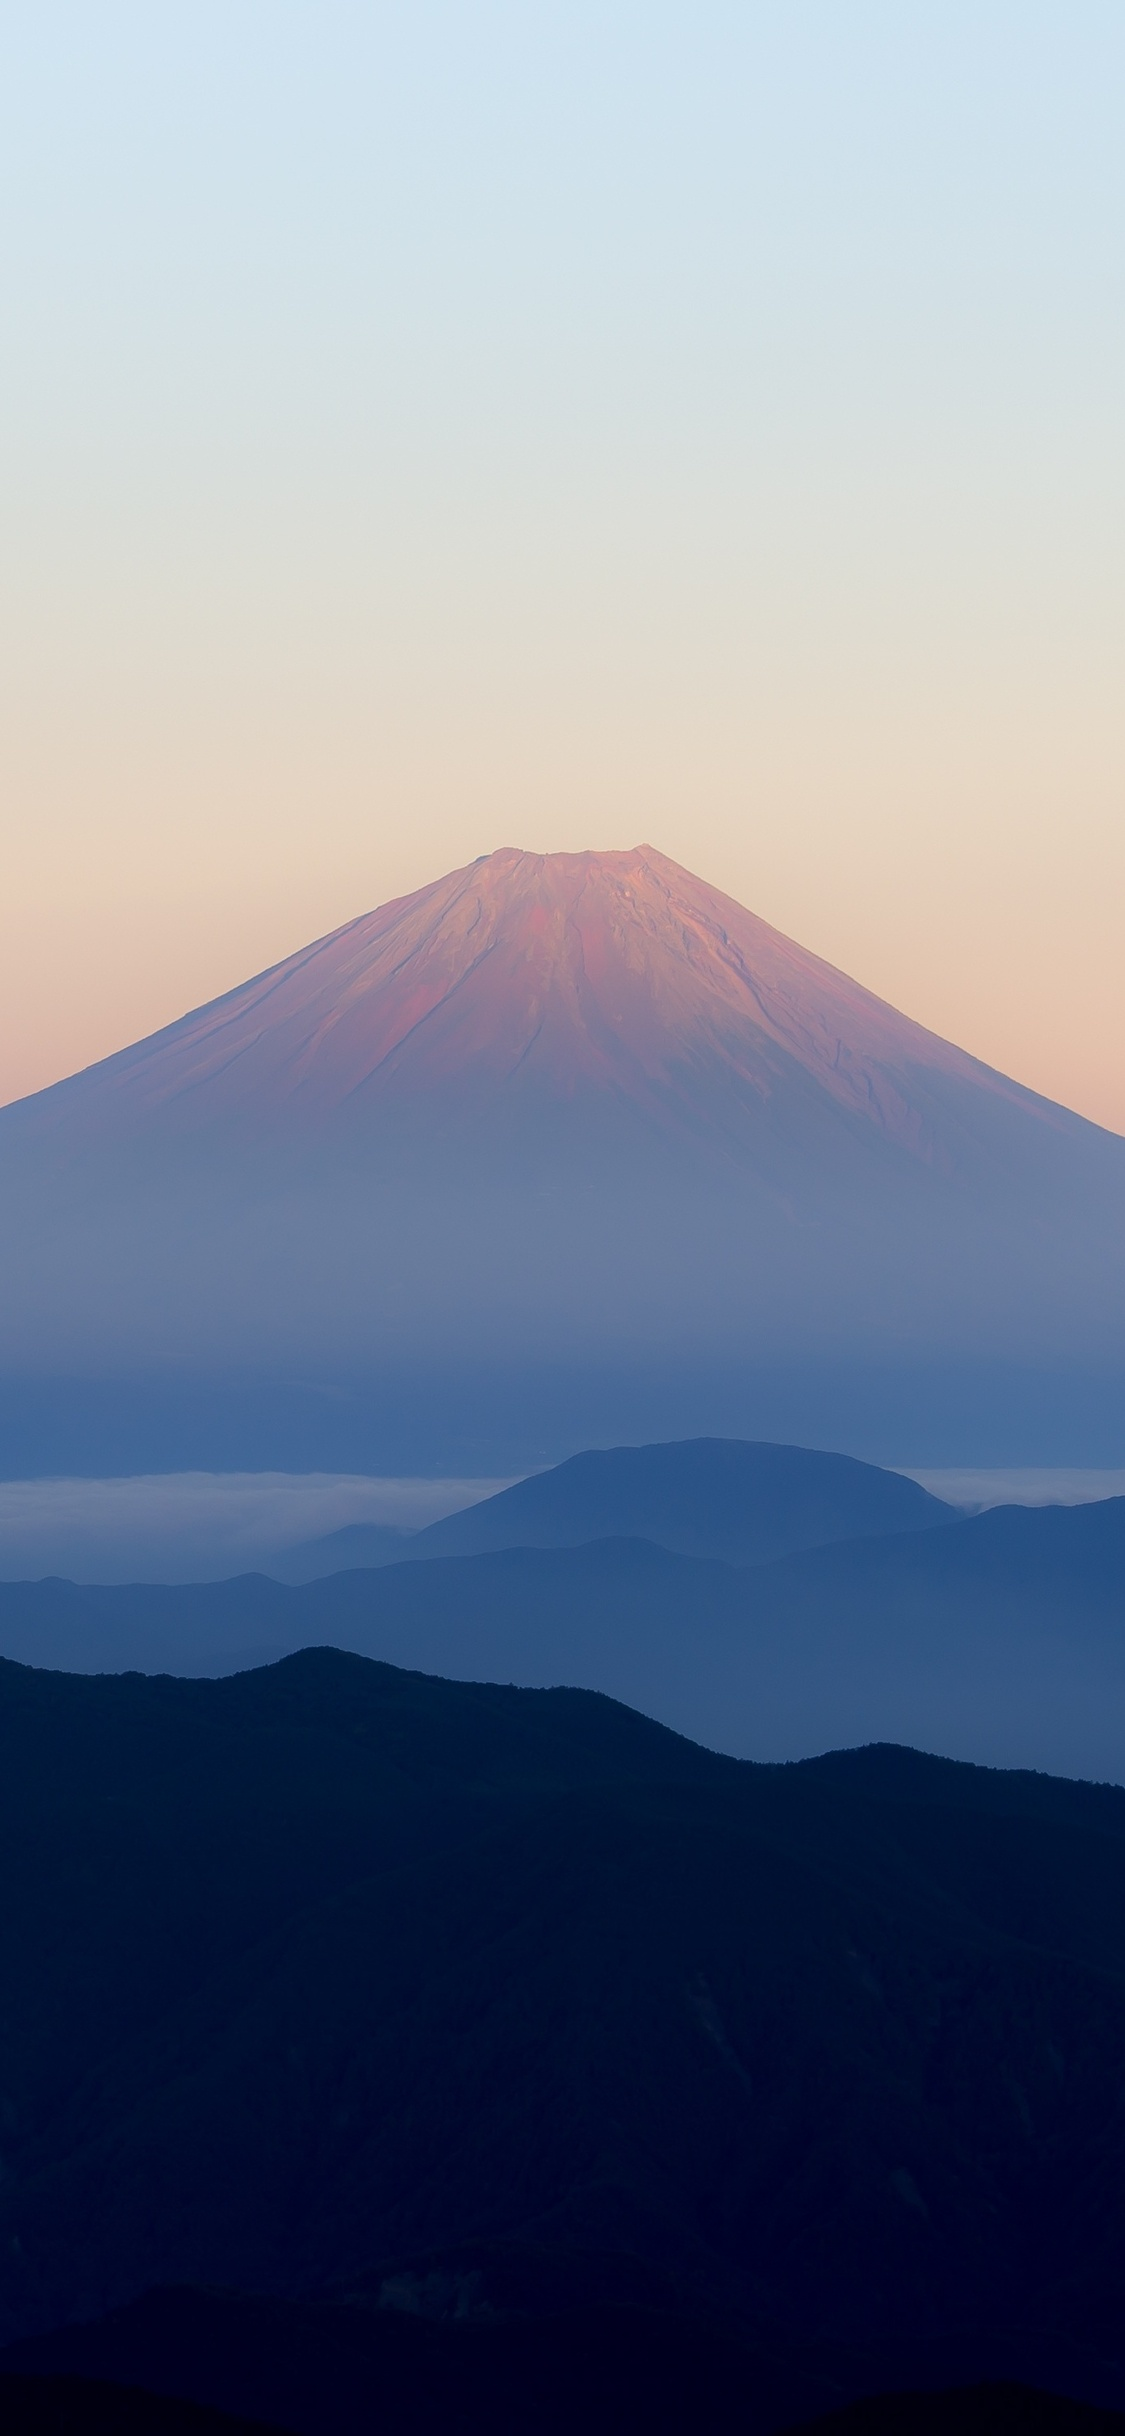 1125x2436 Mt Fuji 4k Iphone Xs Iphone 10 Iphone X Hd 4k